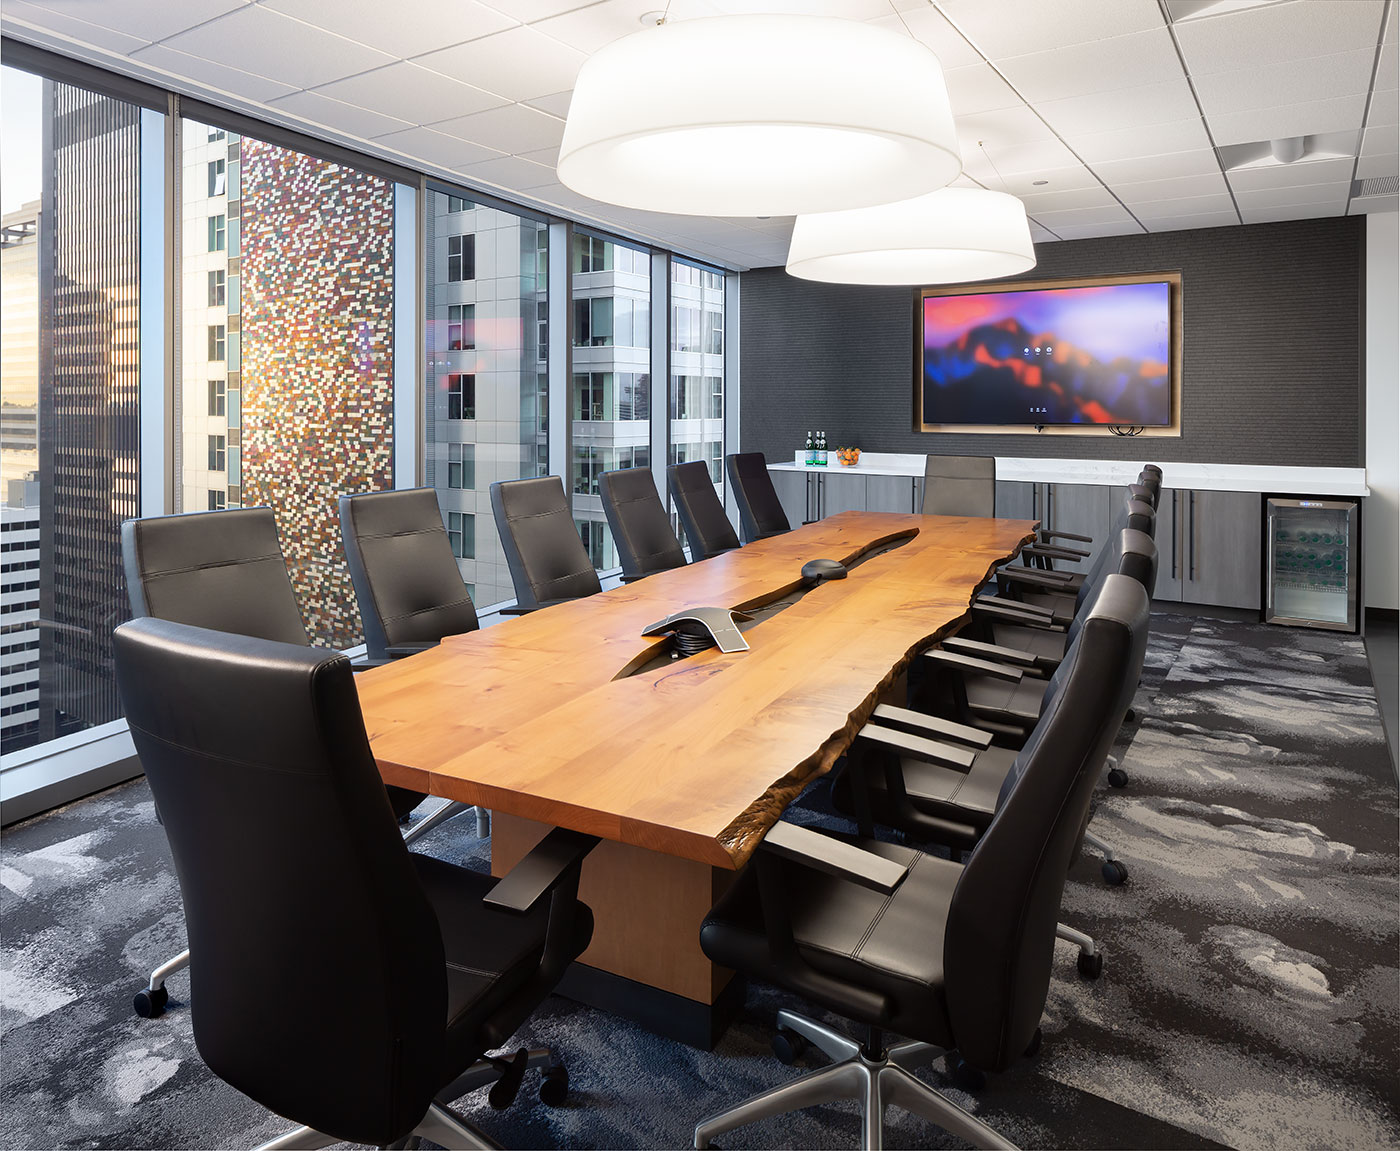 Conference room with large wooden table